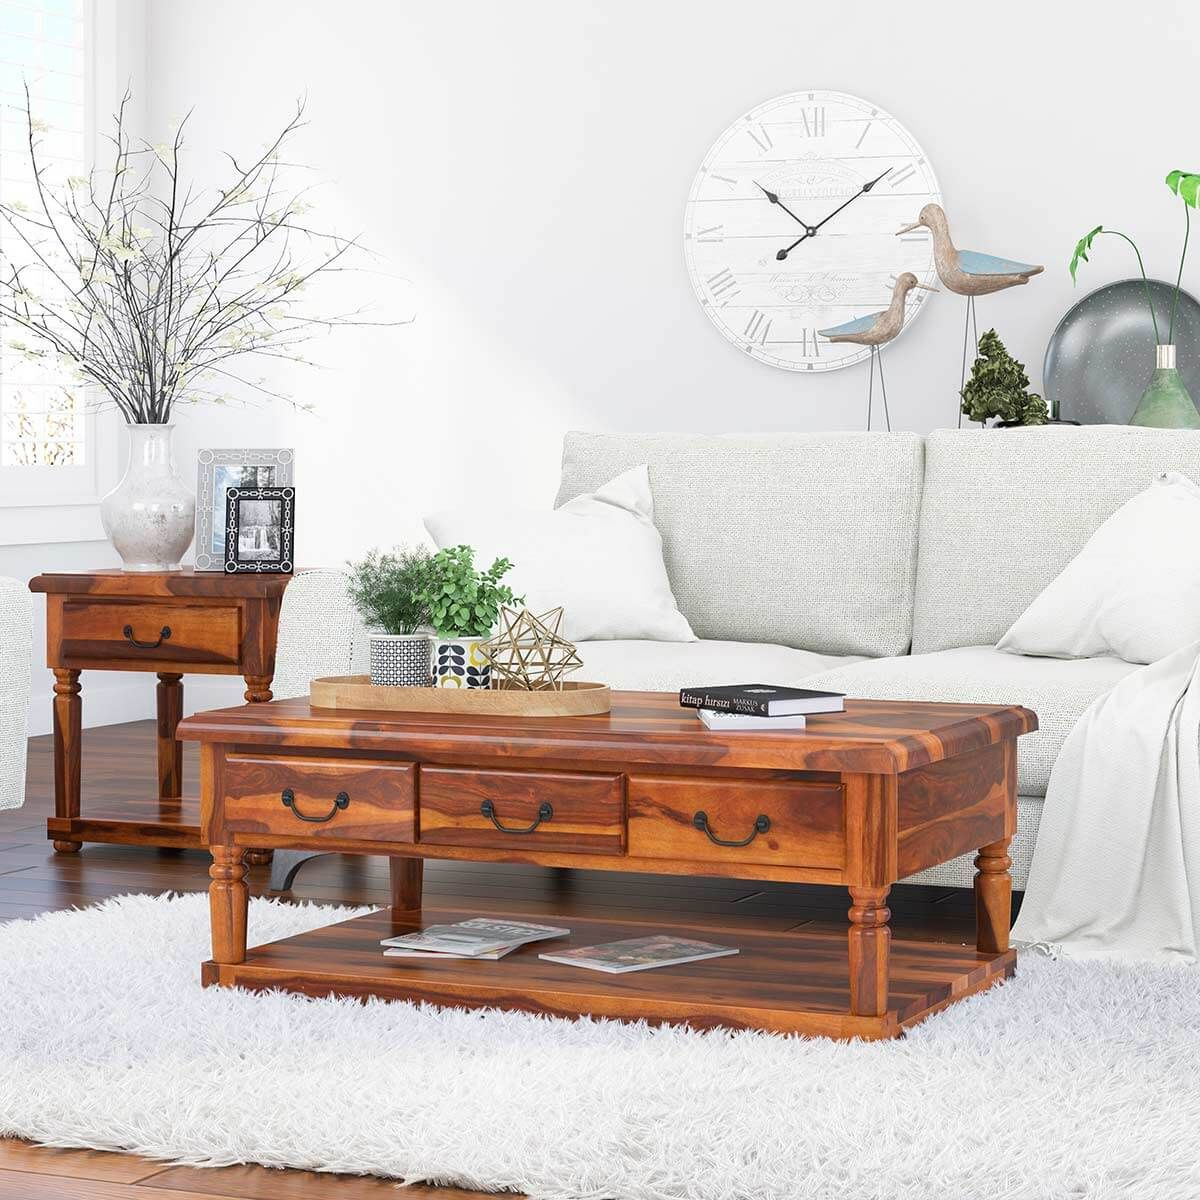 Bakersfield Solid Wood Baluster Coffee Table With 3 Drawer In 2021 Coffee Table Rustic Square Coffee Table Wood Balusters [ 1200 x 1200 Pixel ]